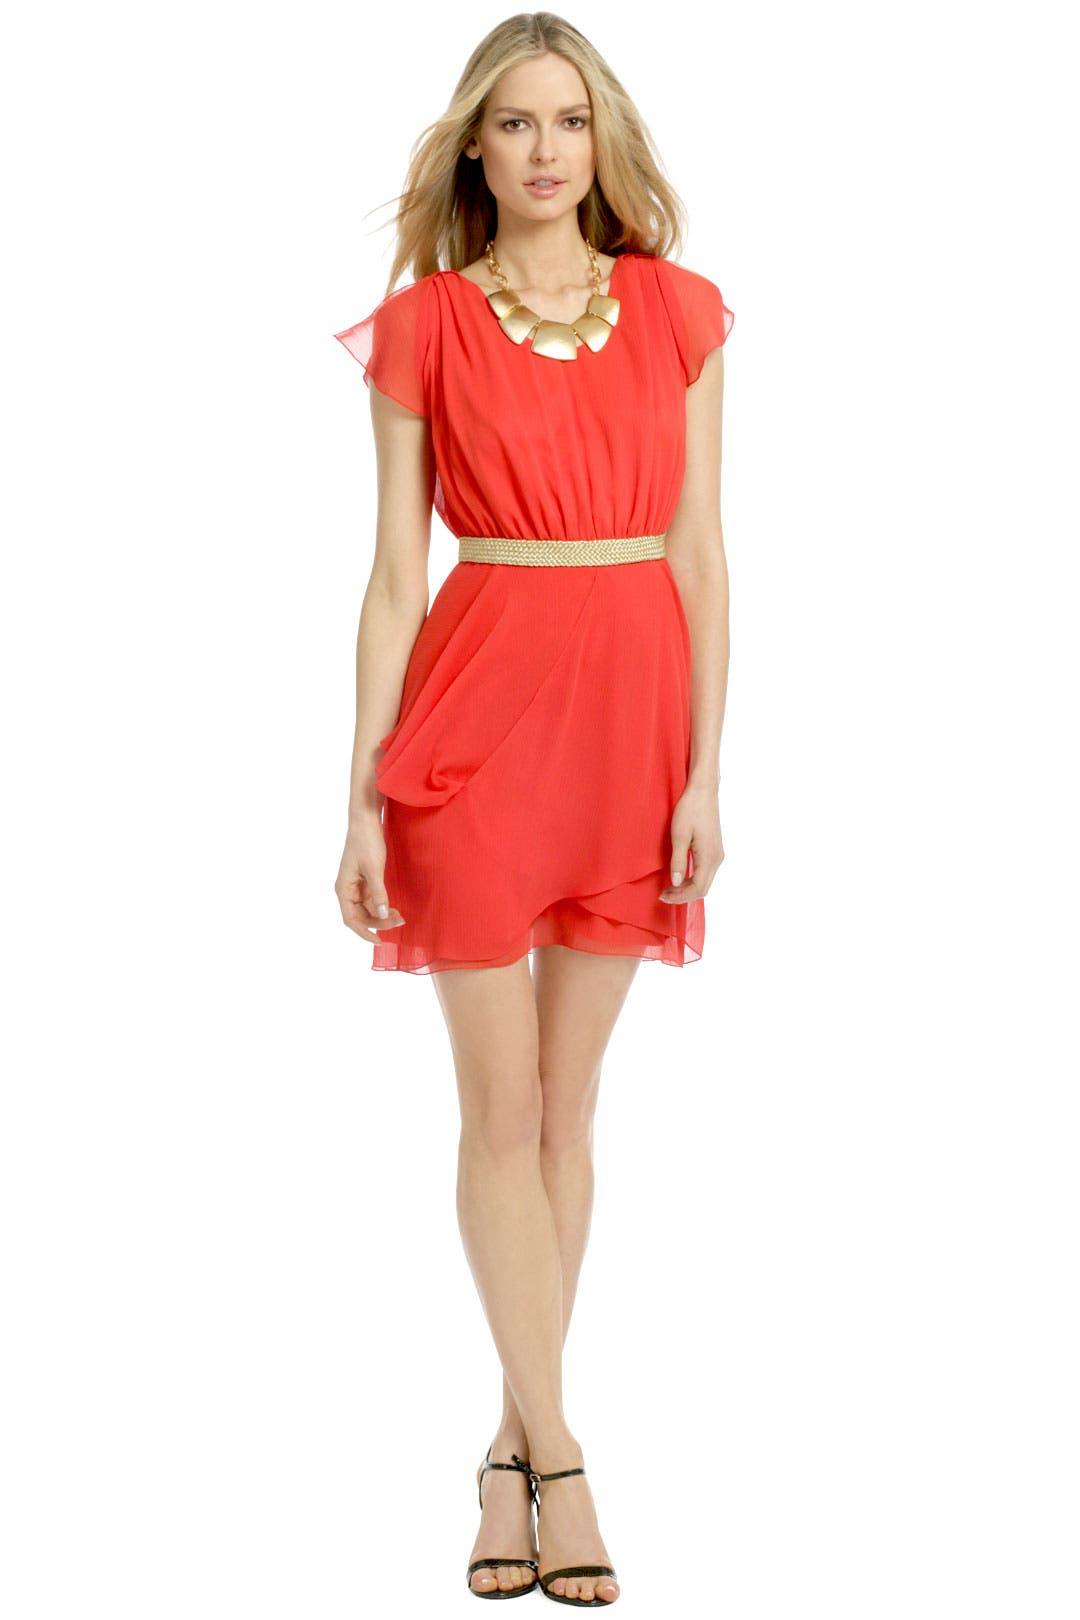 Fierce Flame Dress by Mark & James by Badgley Mischka